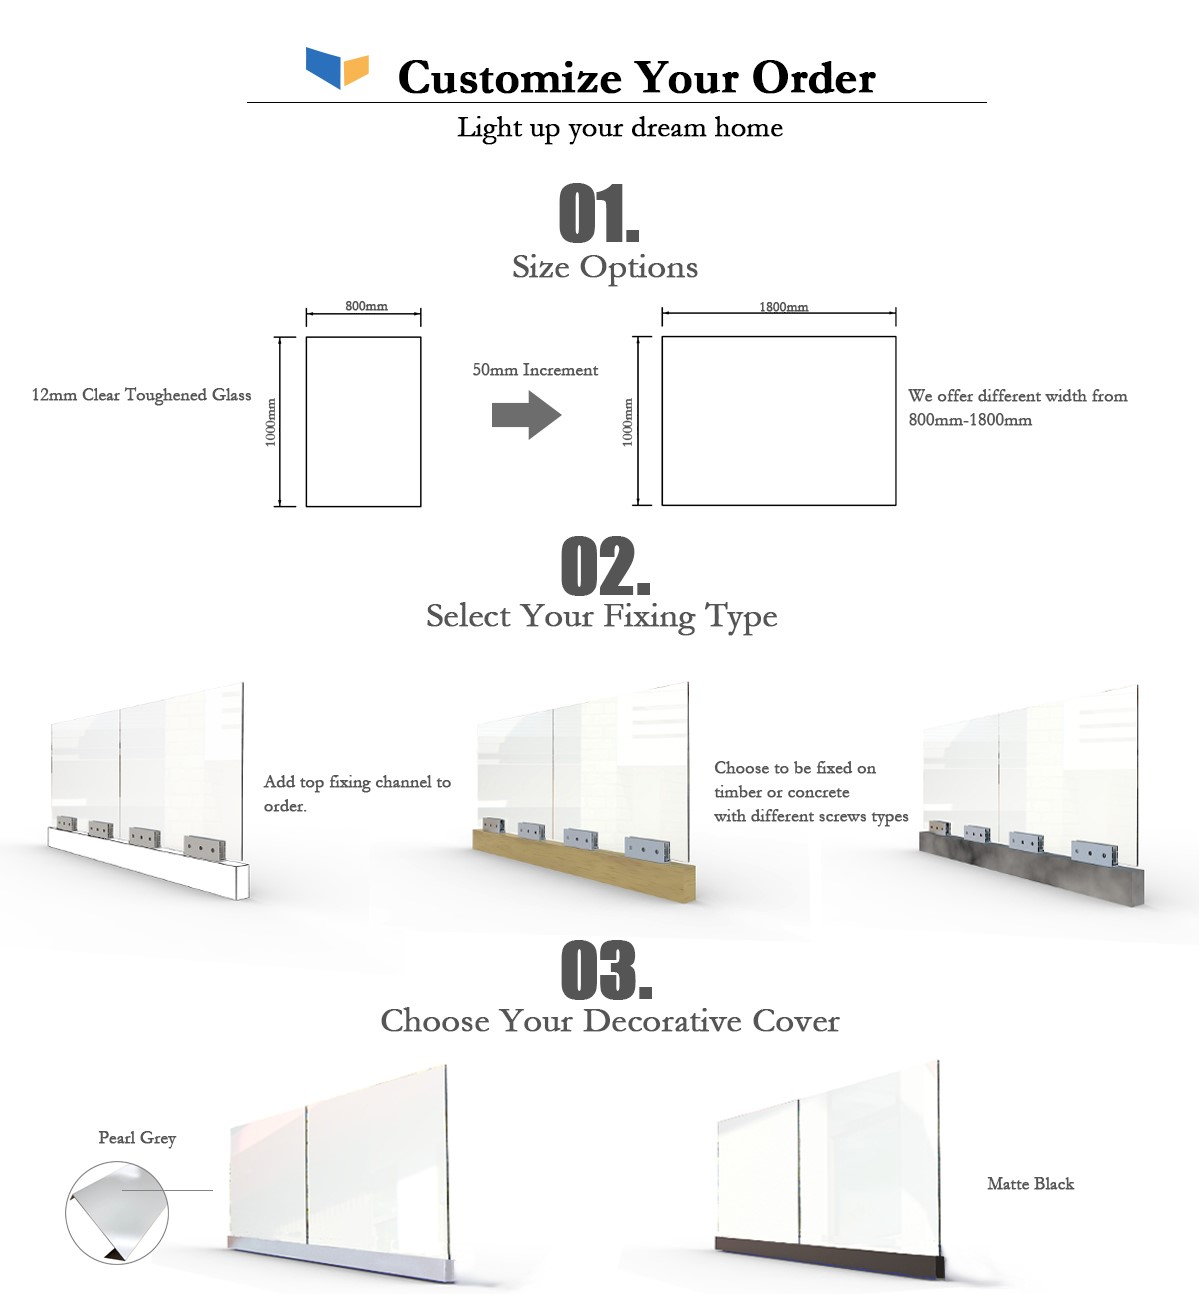 tpxcustomize-your-order-revised-31.jpg